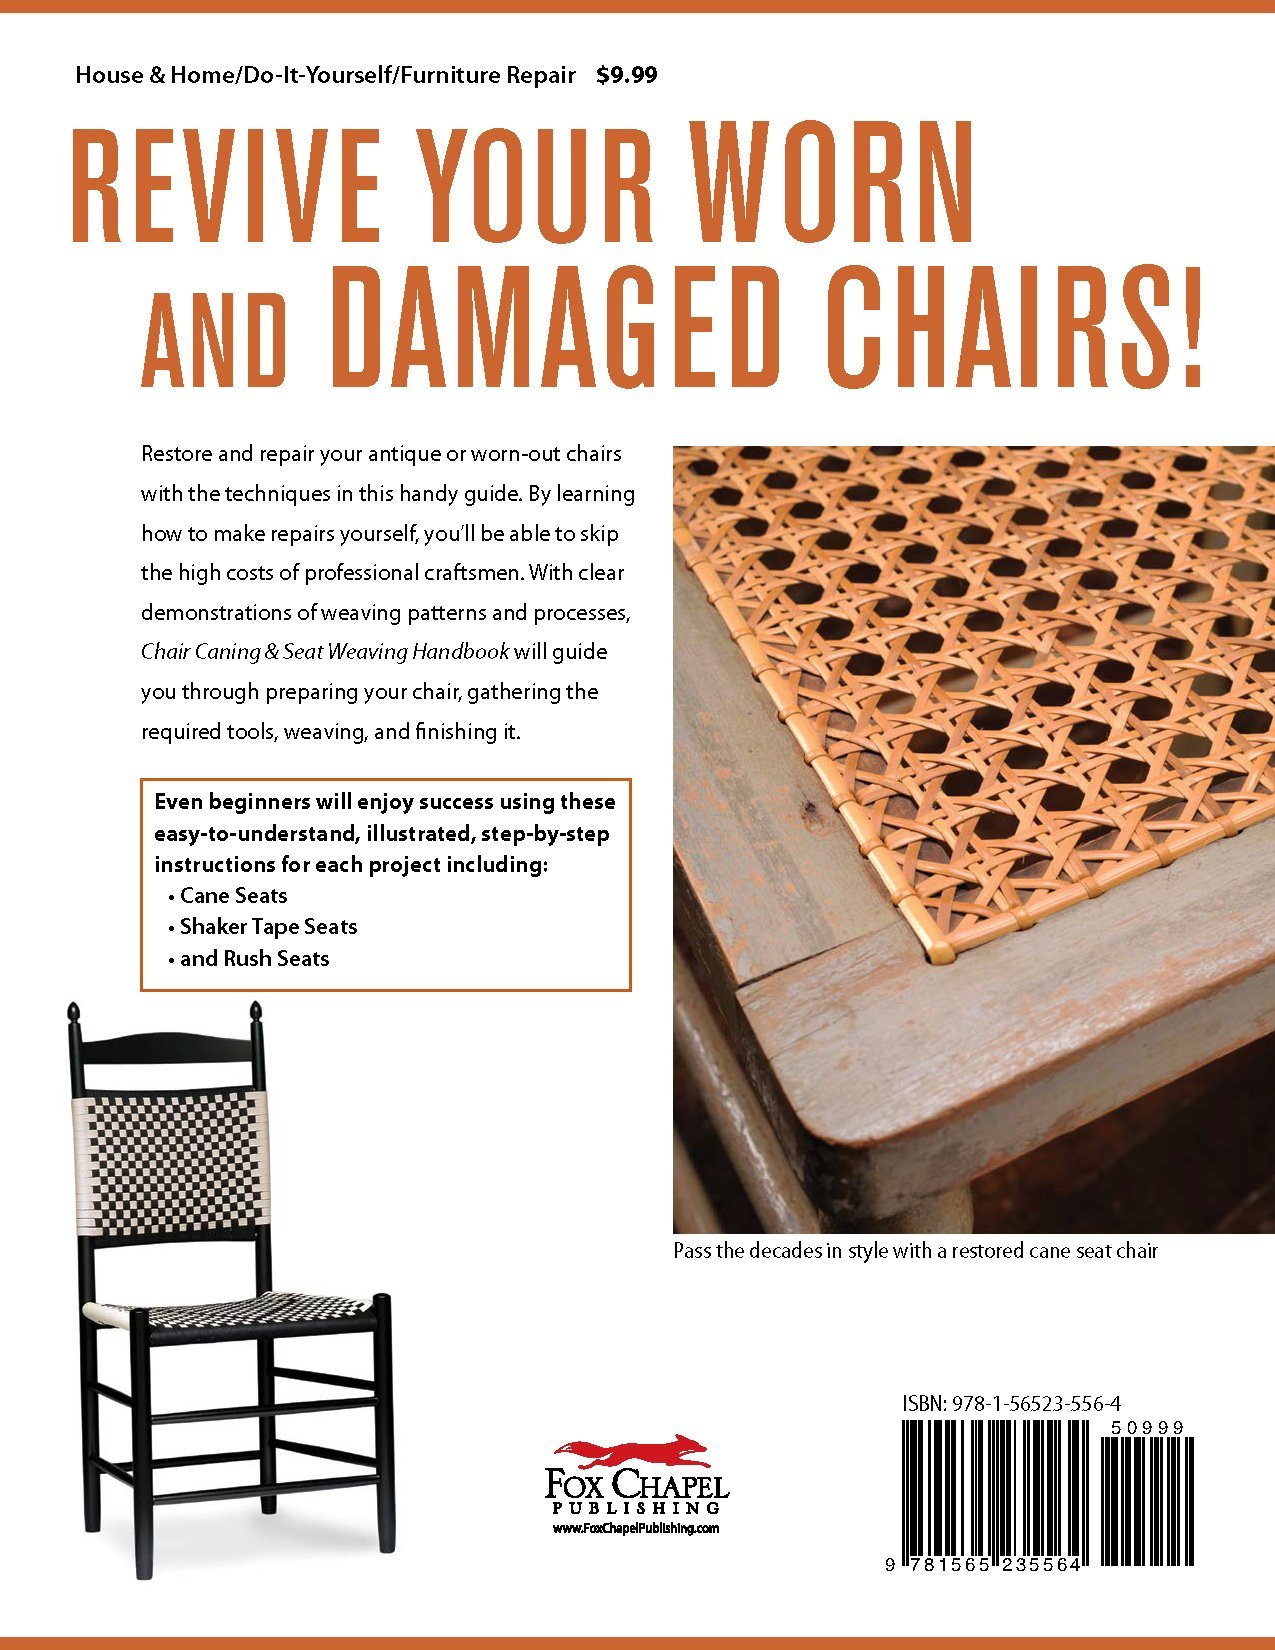 Chair Caning U0026 Seat Weaving Handbook: Illustrated Directions For Cane,  Rush, And Tape Seats: Skills Institute Press: 9781565235564: Amazon.com:  Books